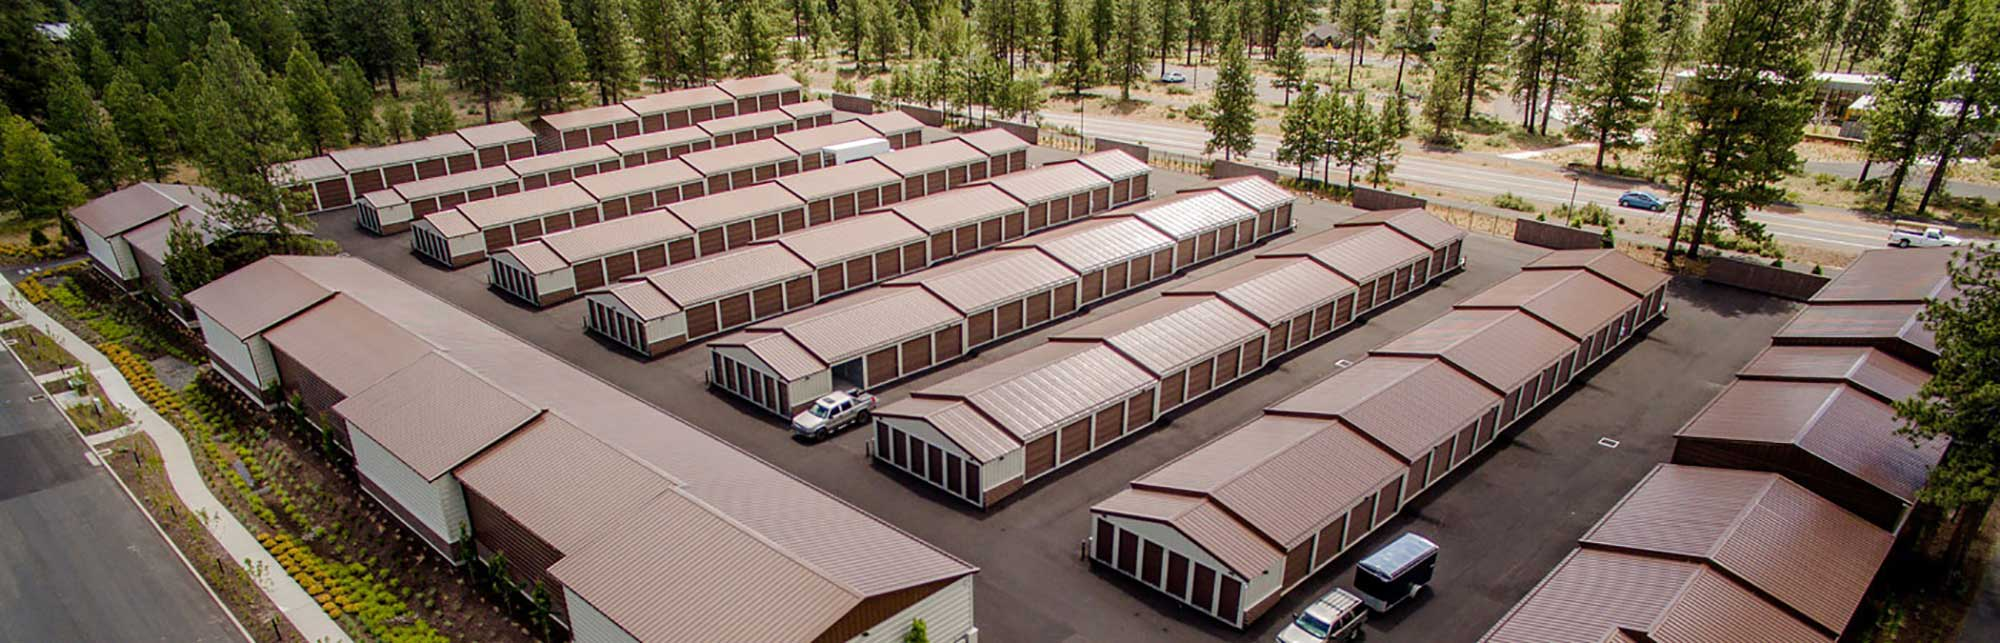 Self storage in Bend OR